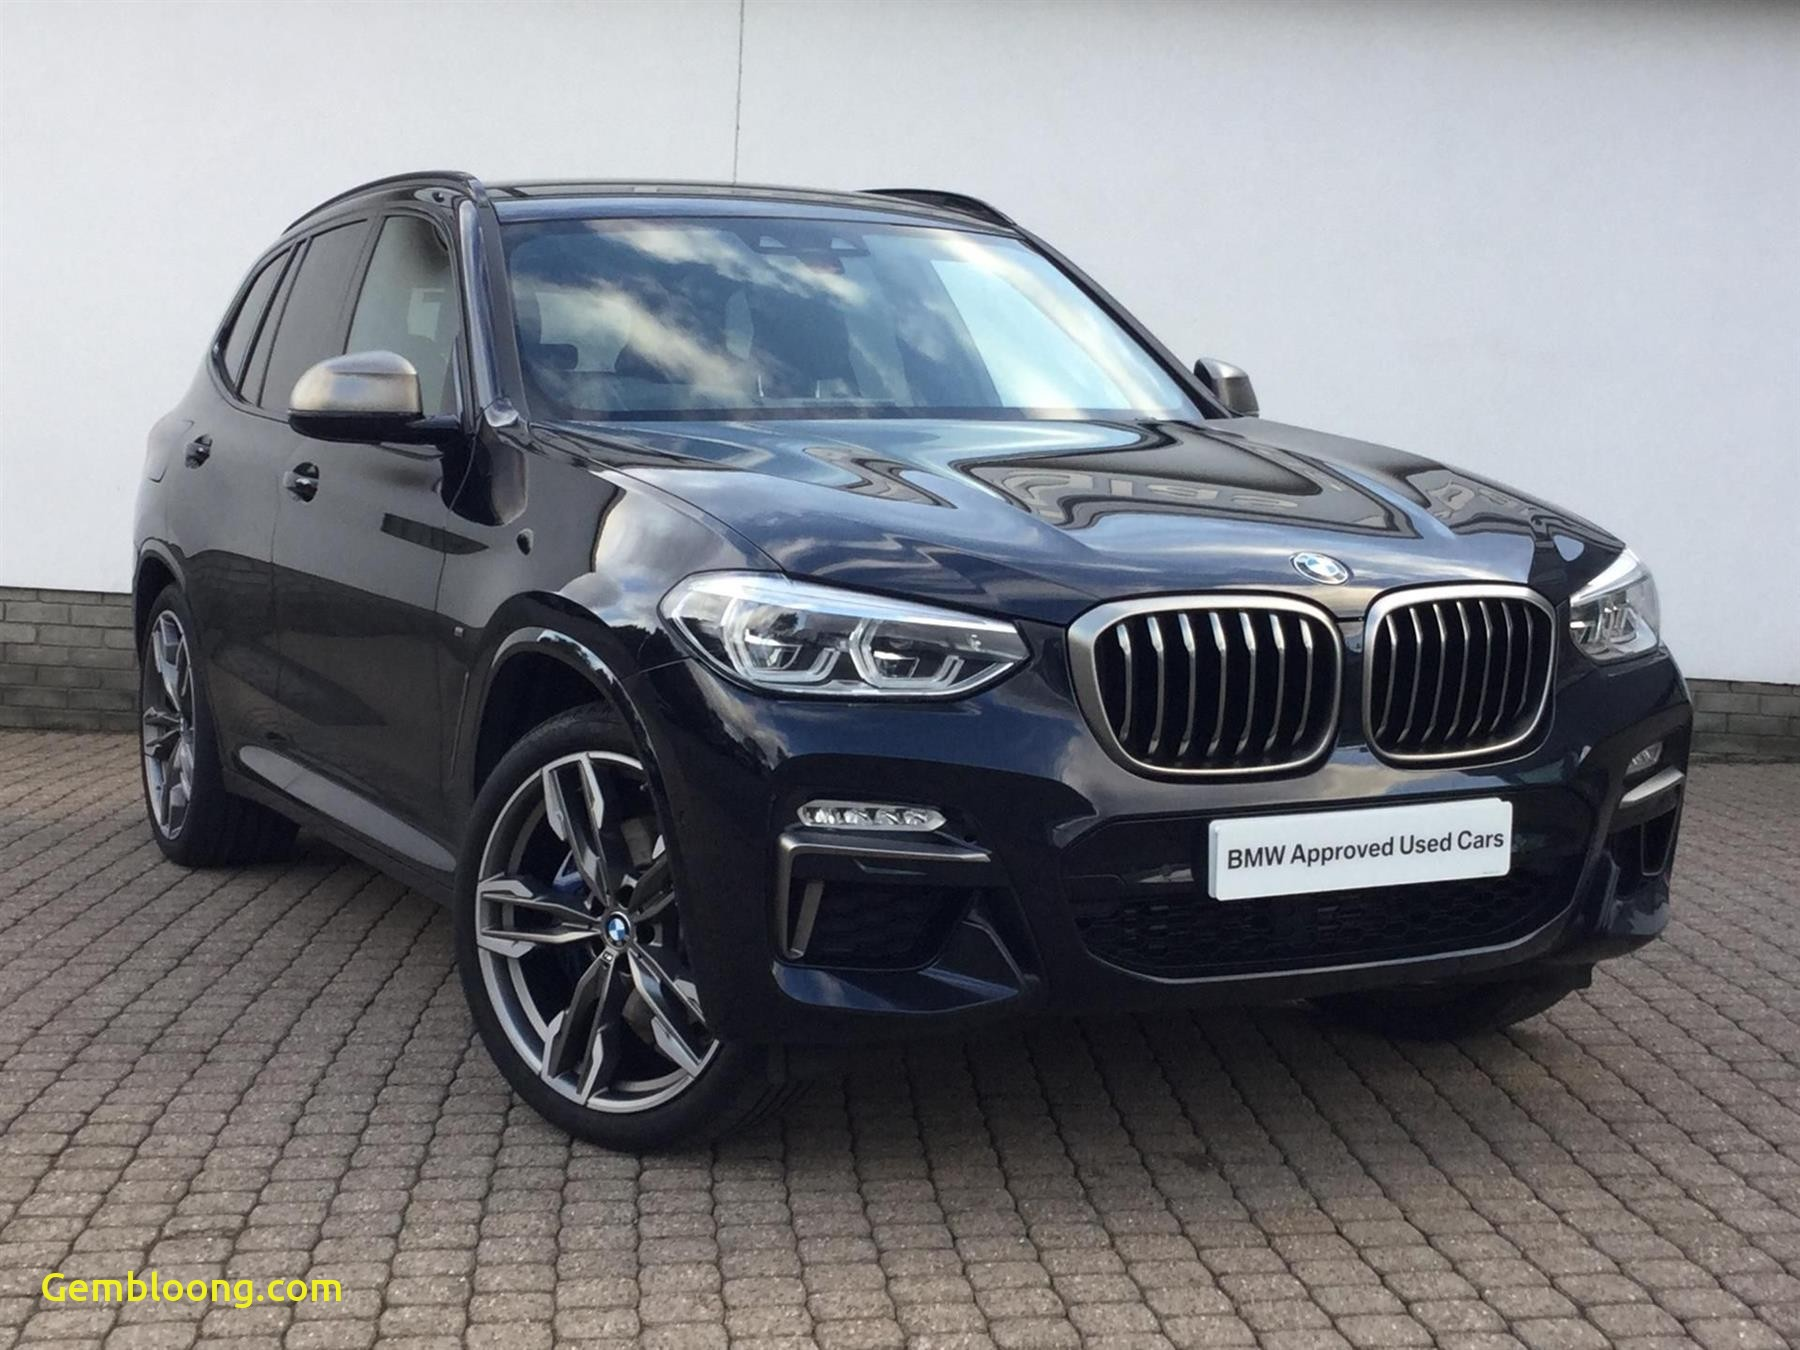 Used Bmw X3 Beautiful Used 2019 Bmw X3 G01 X3 M40d Za B57 3 0d for Sale In